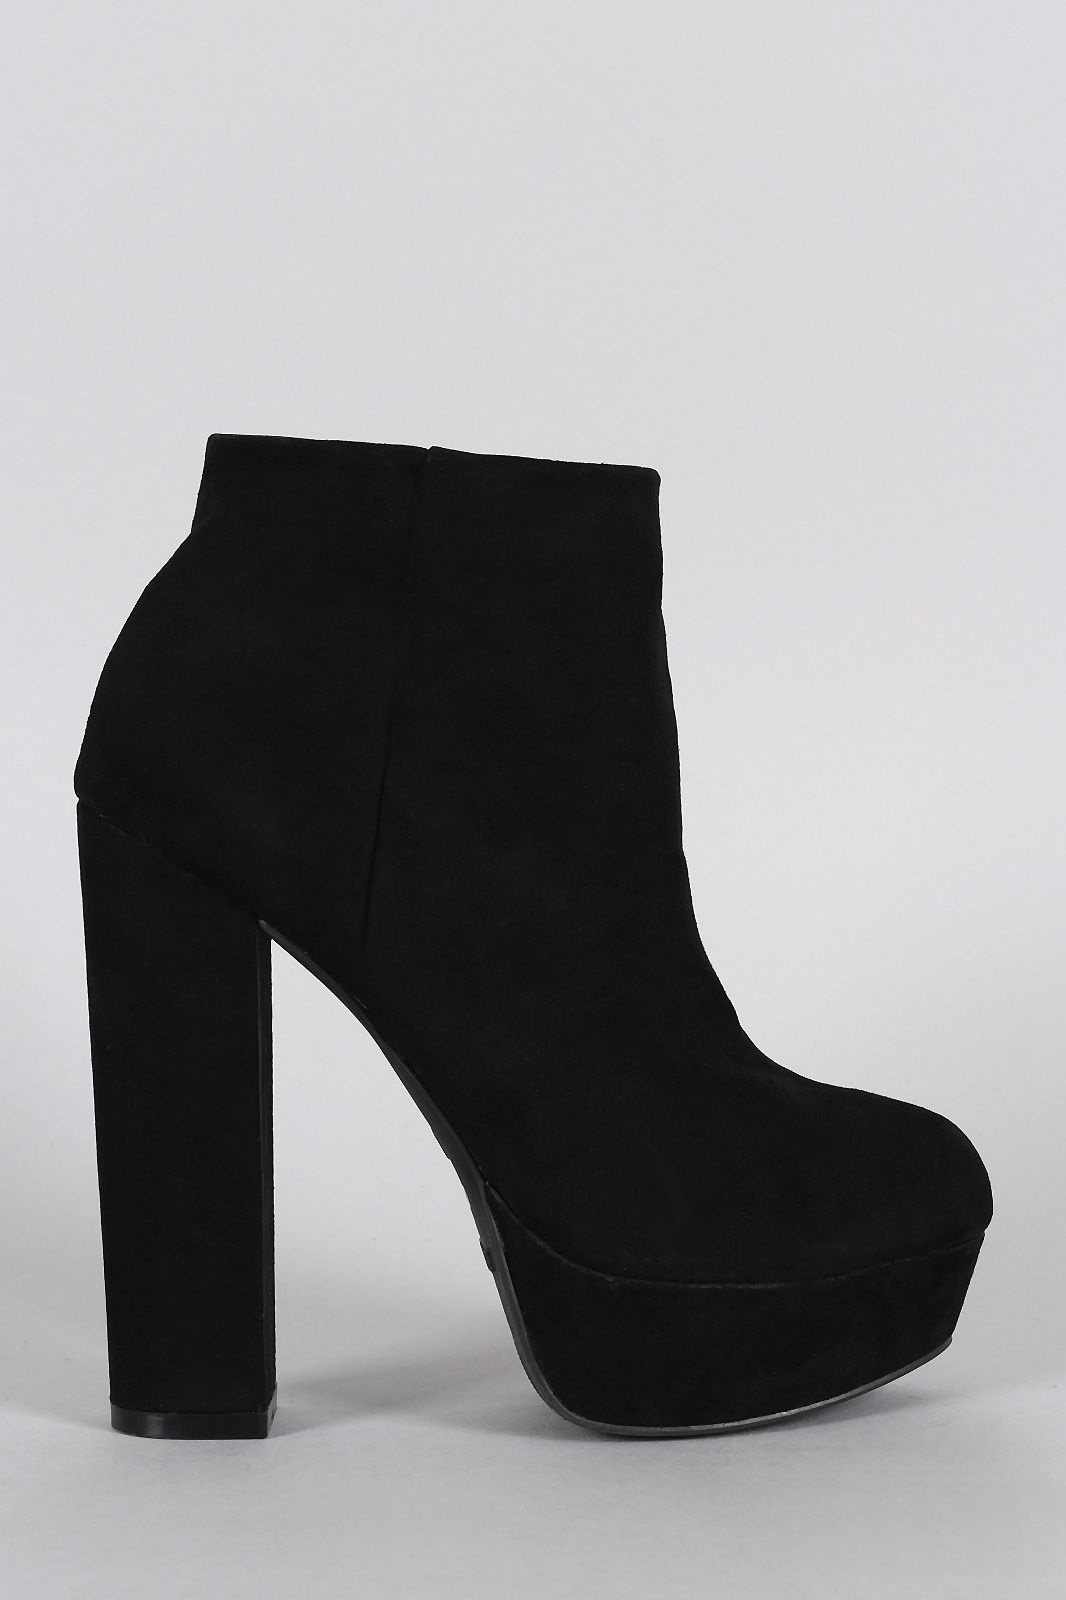 85dcfbe38d9 Bamboo Suede Chunky Heeled Platform Ankle Boots | My Style: Shoes in ...